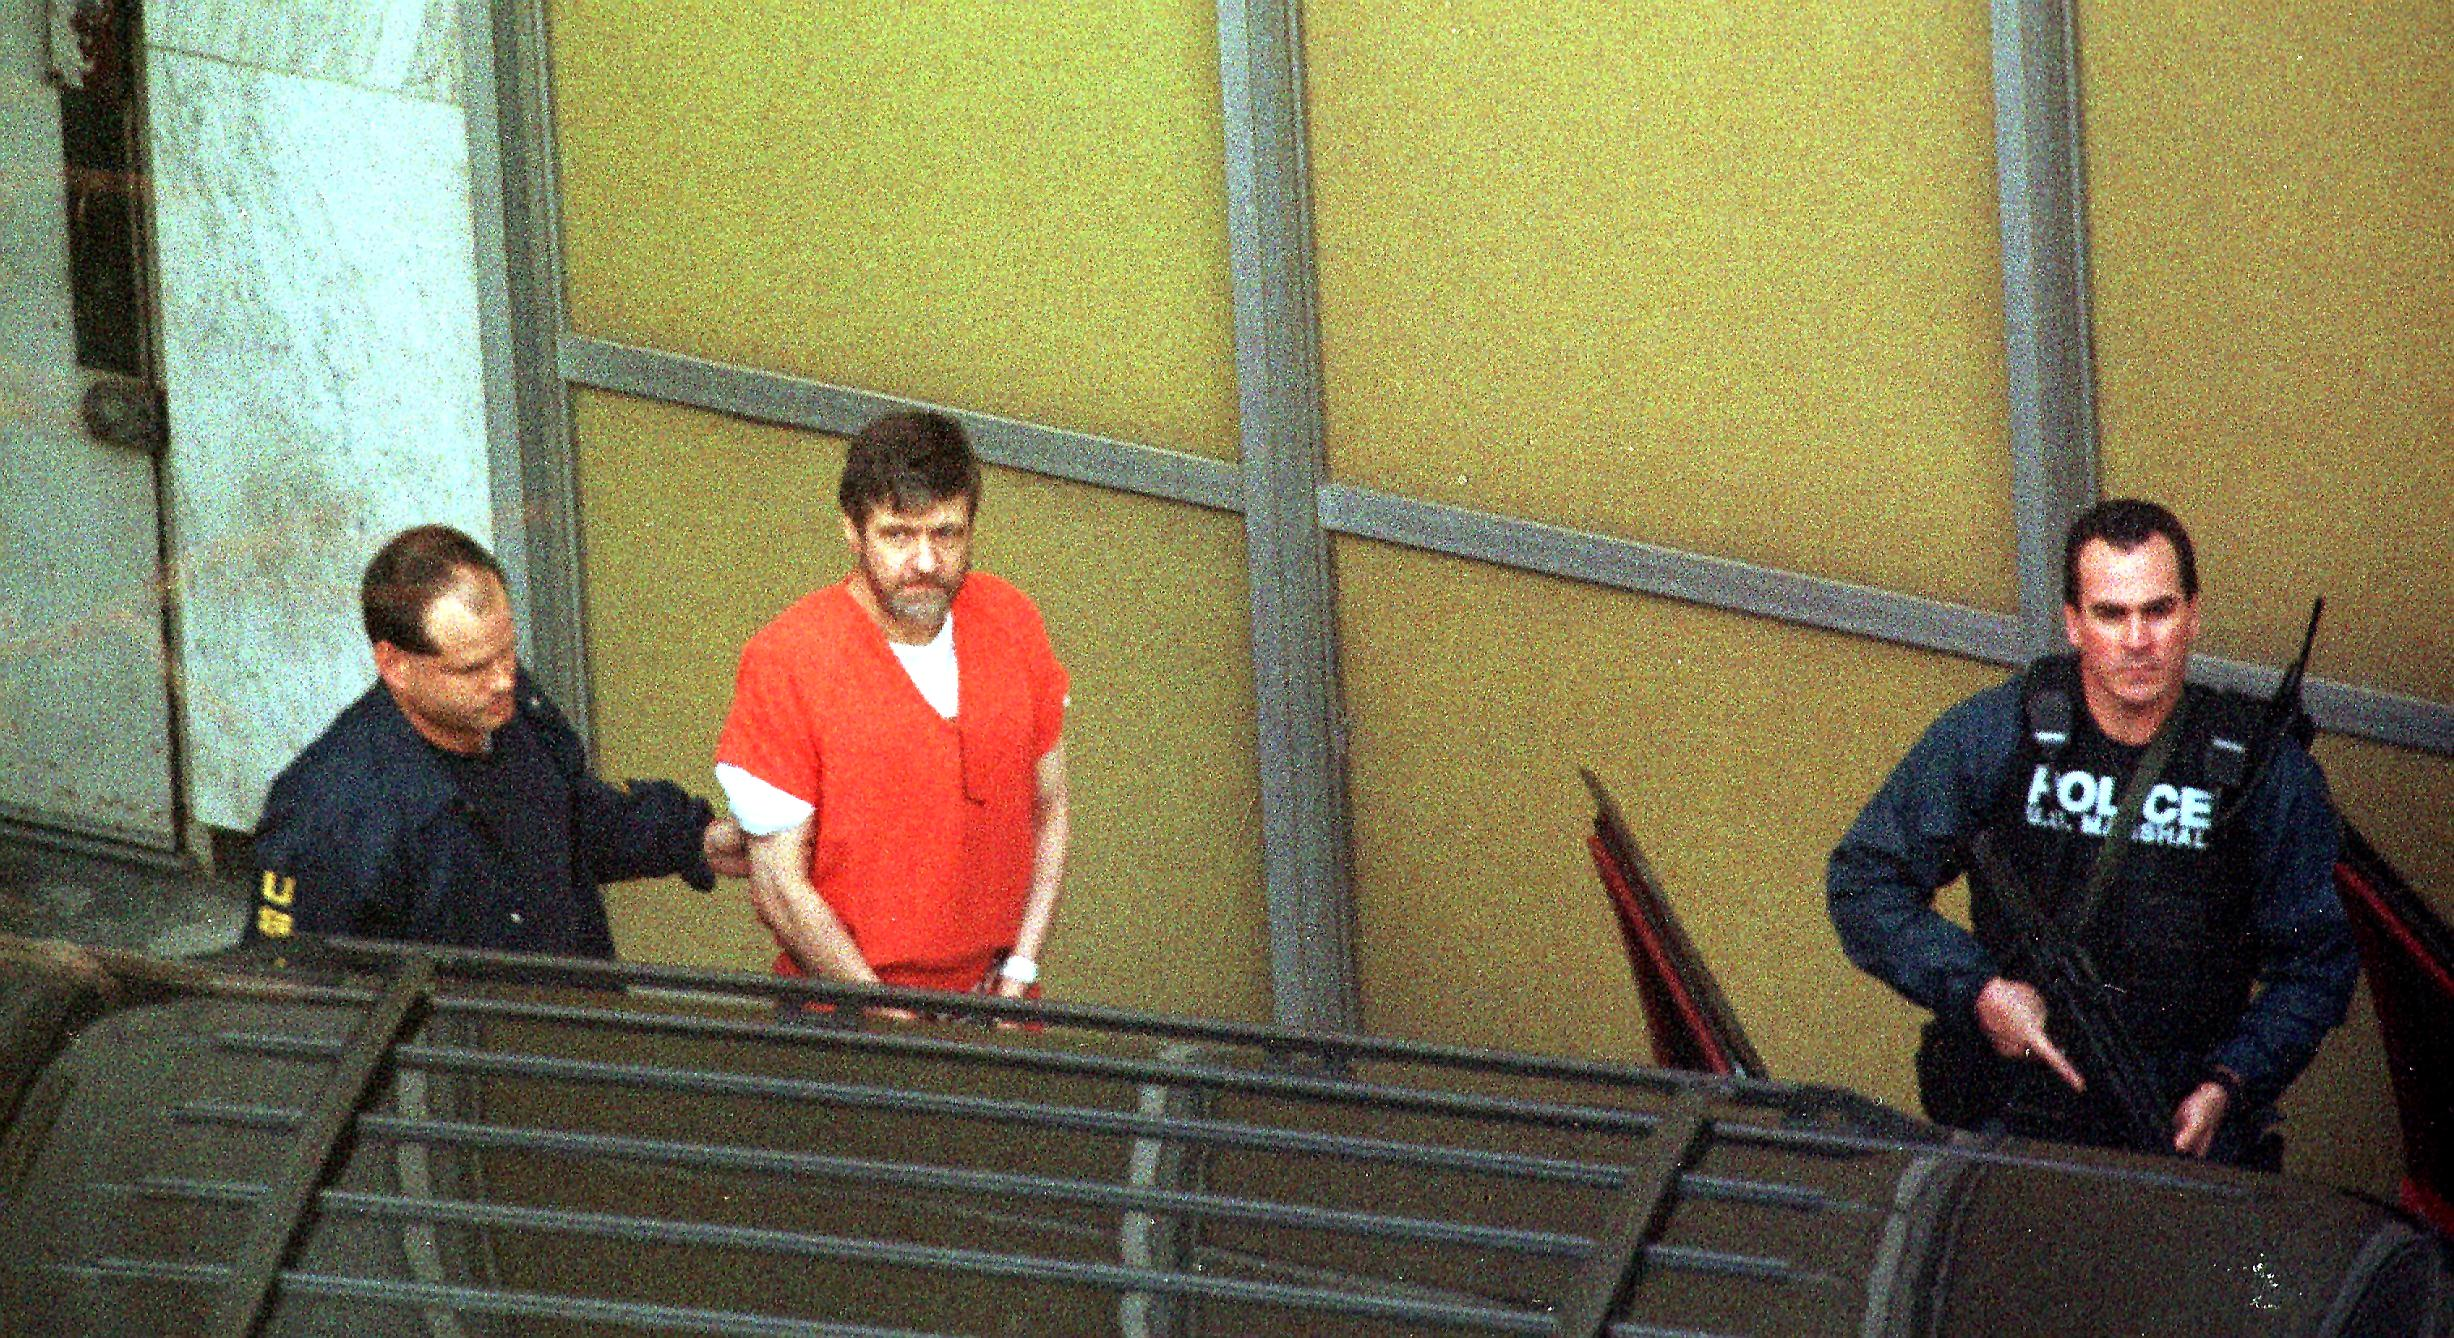 Ted Kaczynski, commonly known as the Unabomber, is led out of court on Jan. 22, 1998.